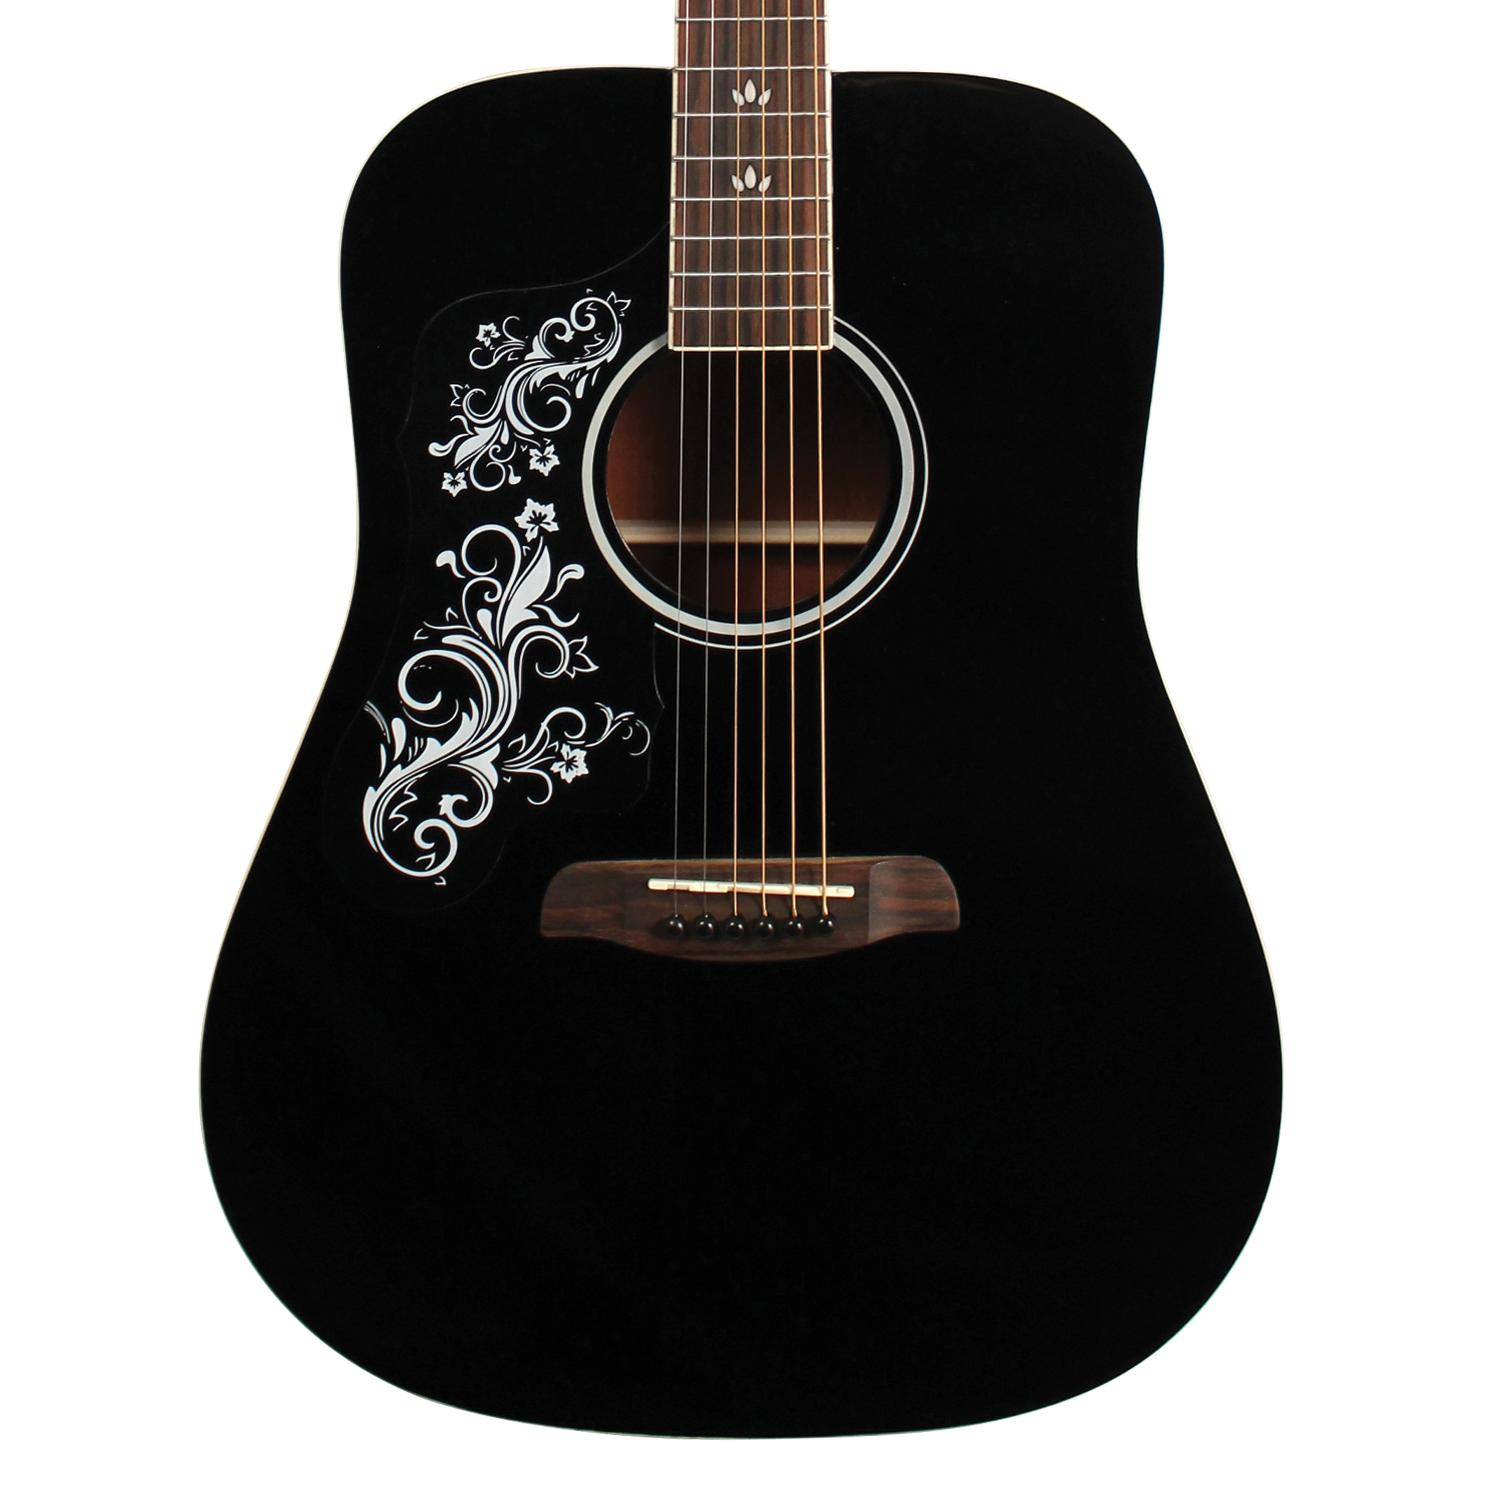 Sawtooth Black Acoustic Dreadnought Guitar with Custom Pickg